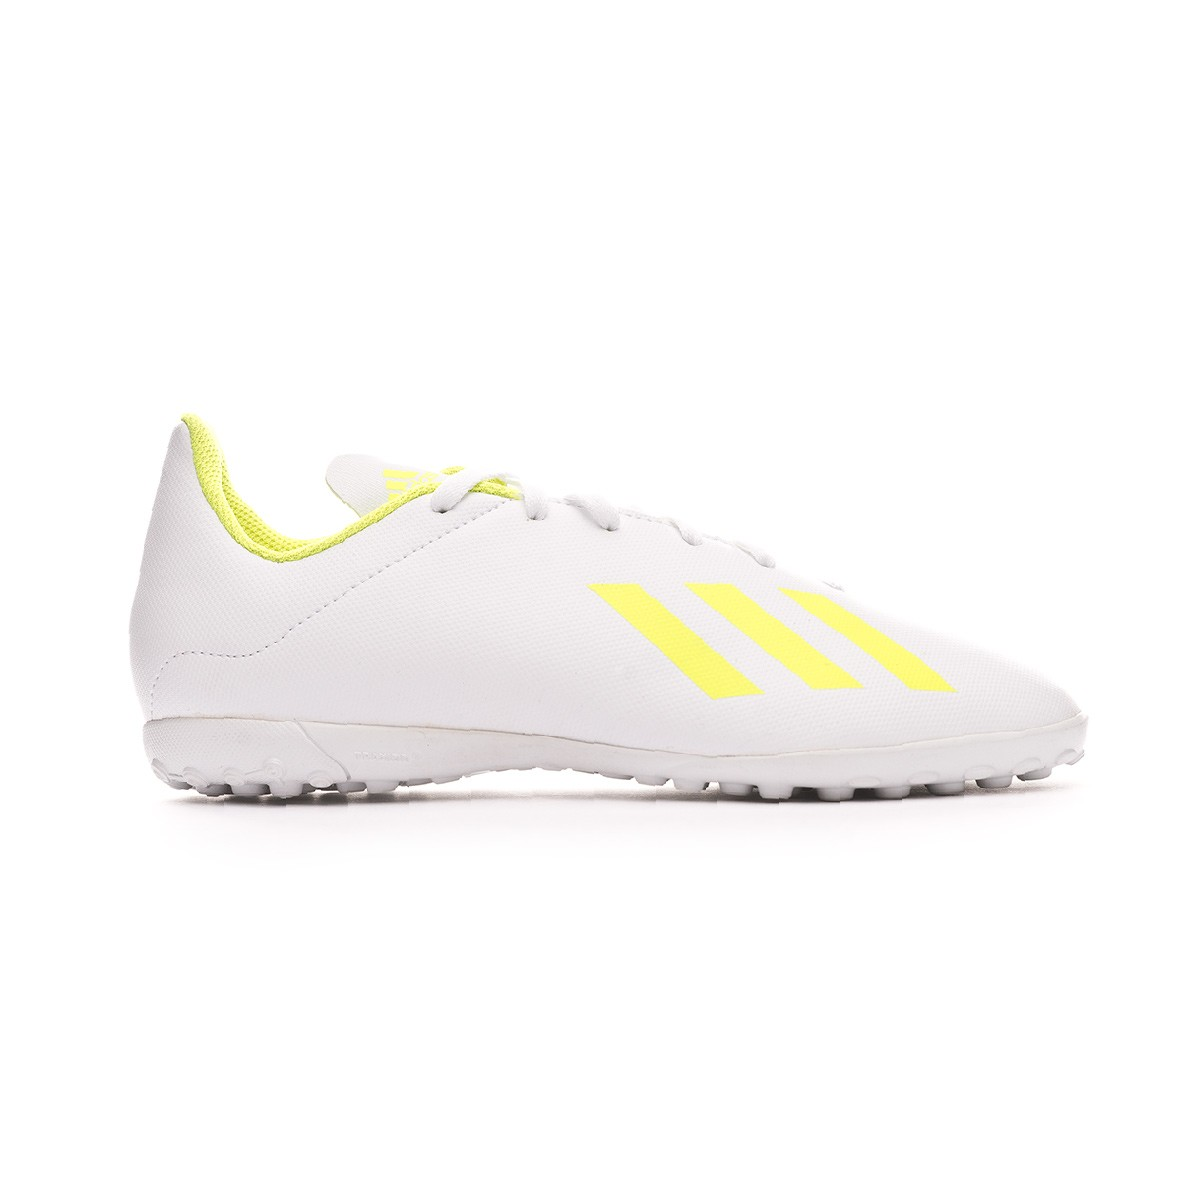 Clip mariposa rival arena  Football Boot adidas Kids X Tango 18.4 Turf White-Solar yellow-White -  Football store Fútbol Emotion